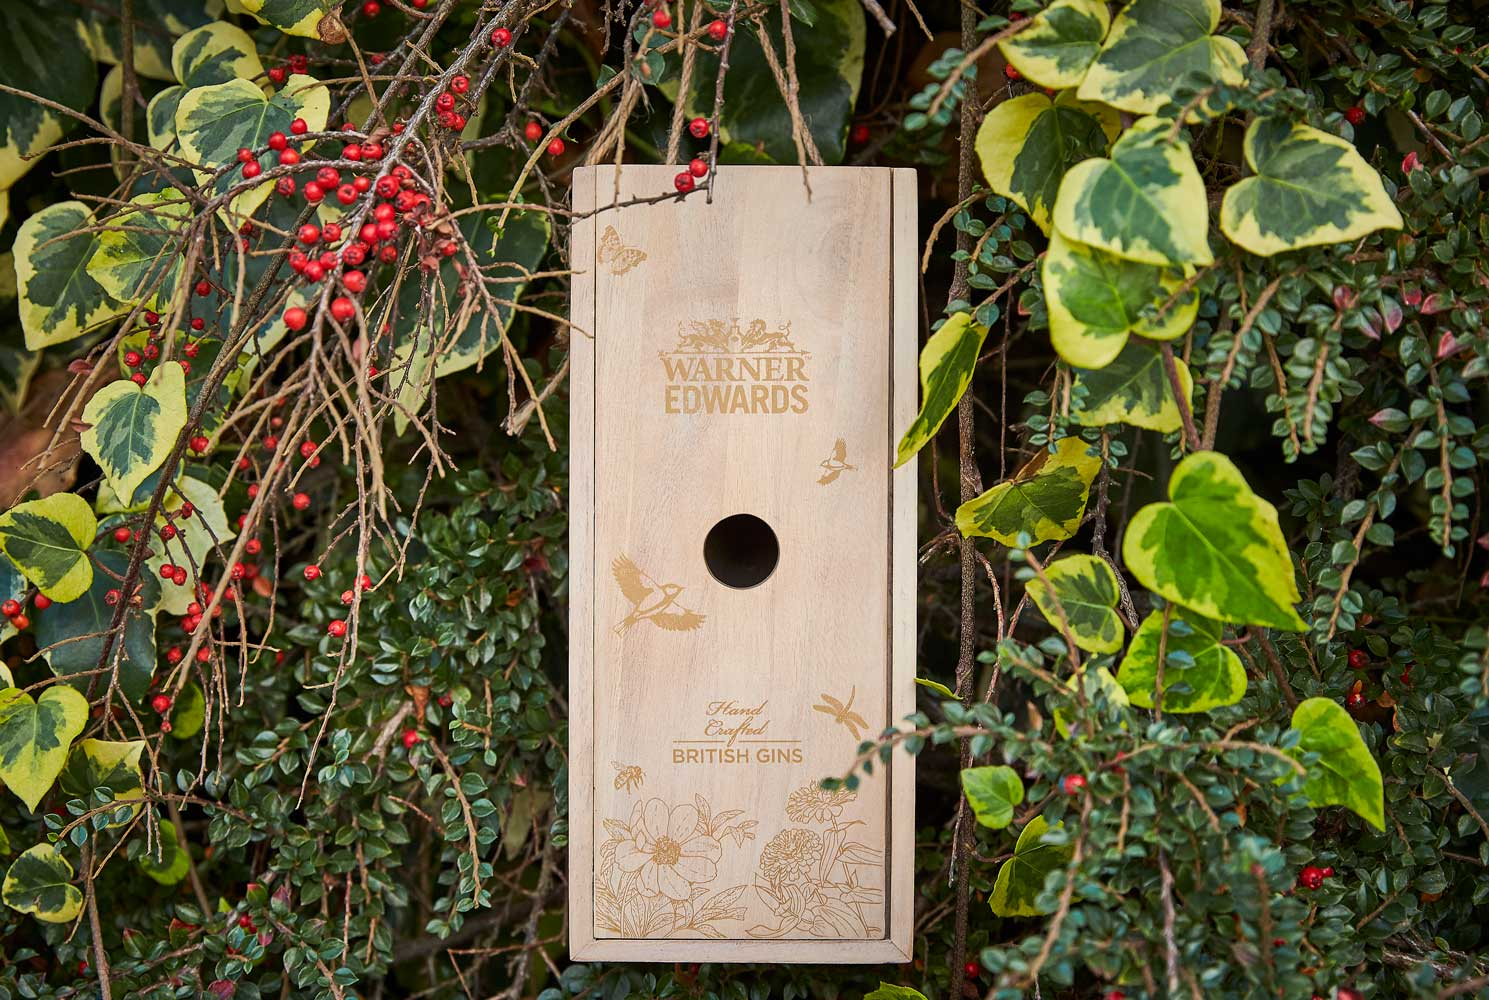 Progress Packaging Wooden Bird Box Insect Hotel Drinks Gin Spirits Liquor Fsc Approved Recycled Biodegradable Reusable Upcycling Responsibly Sourced Eco Friendly Environmentally Friendly 1